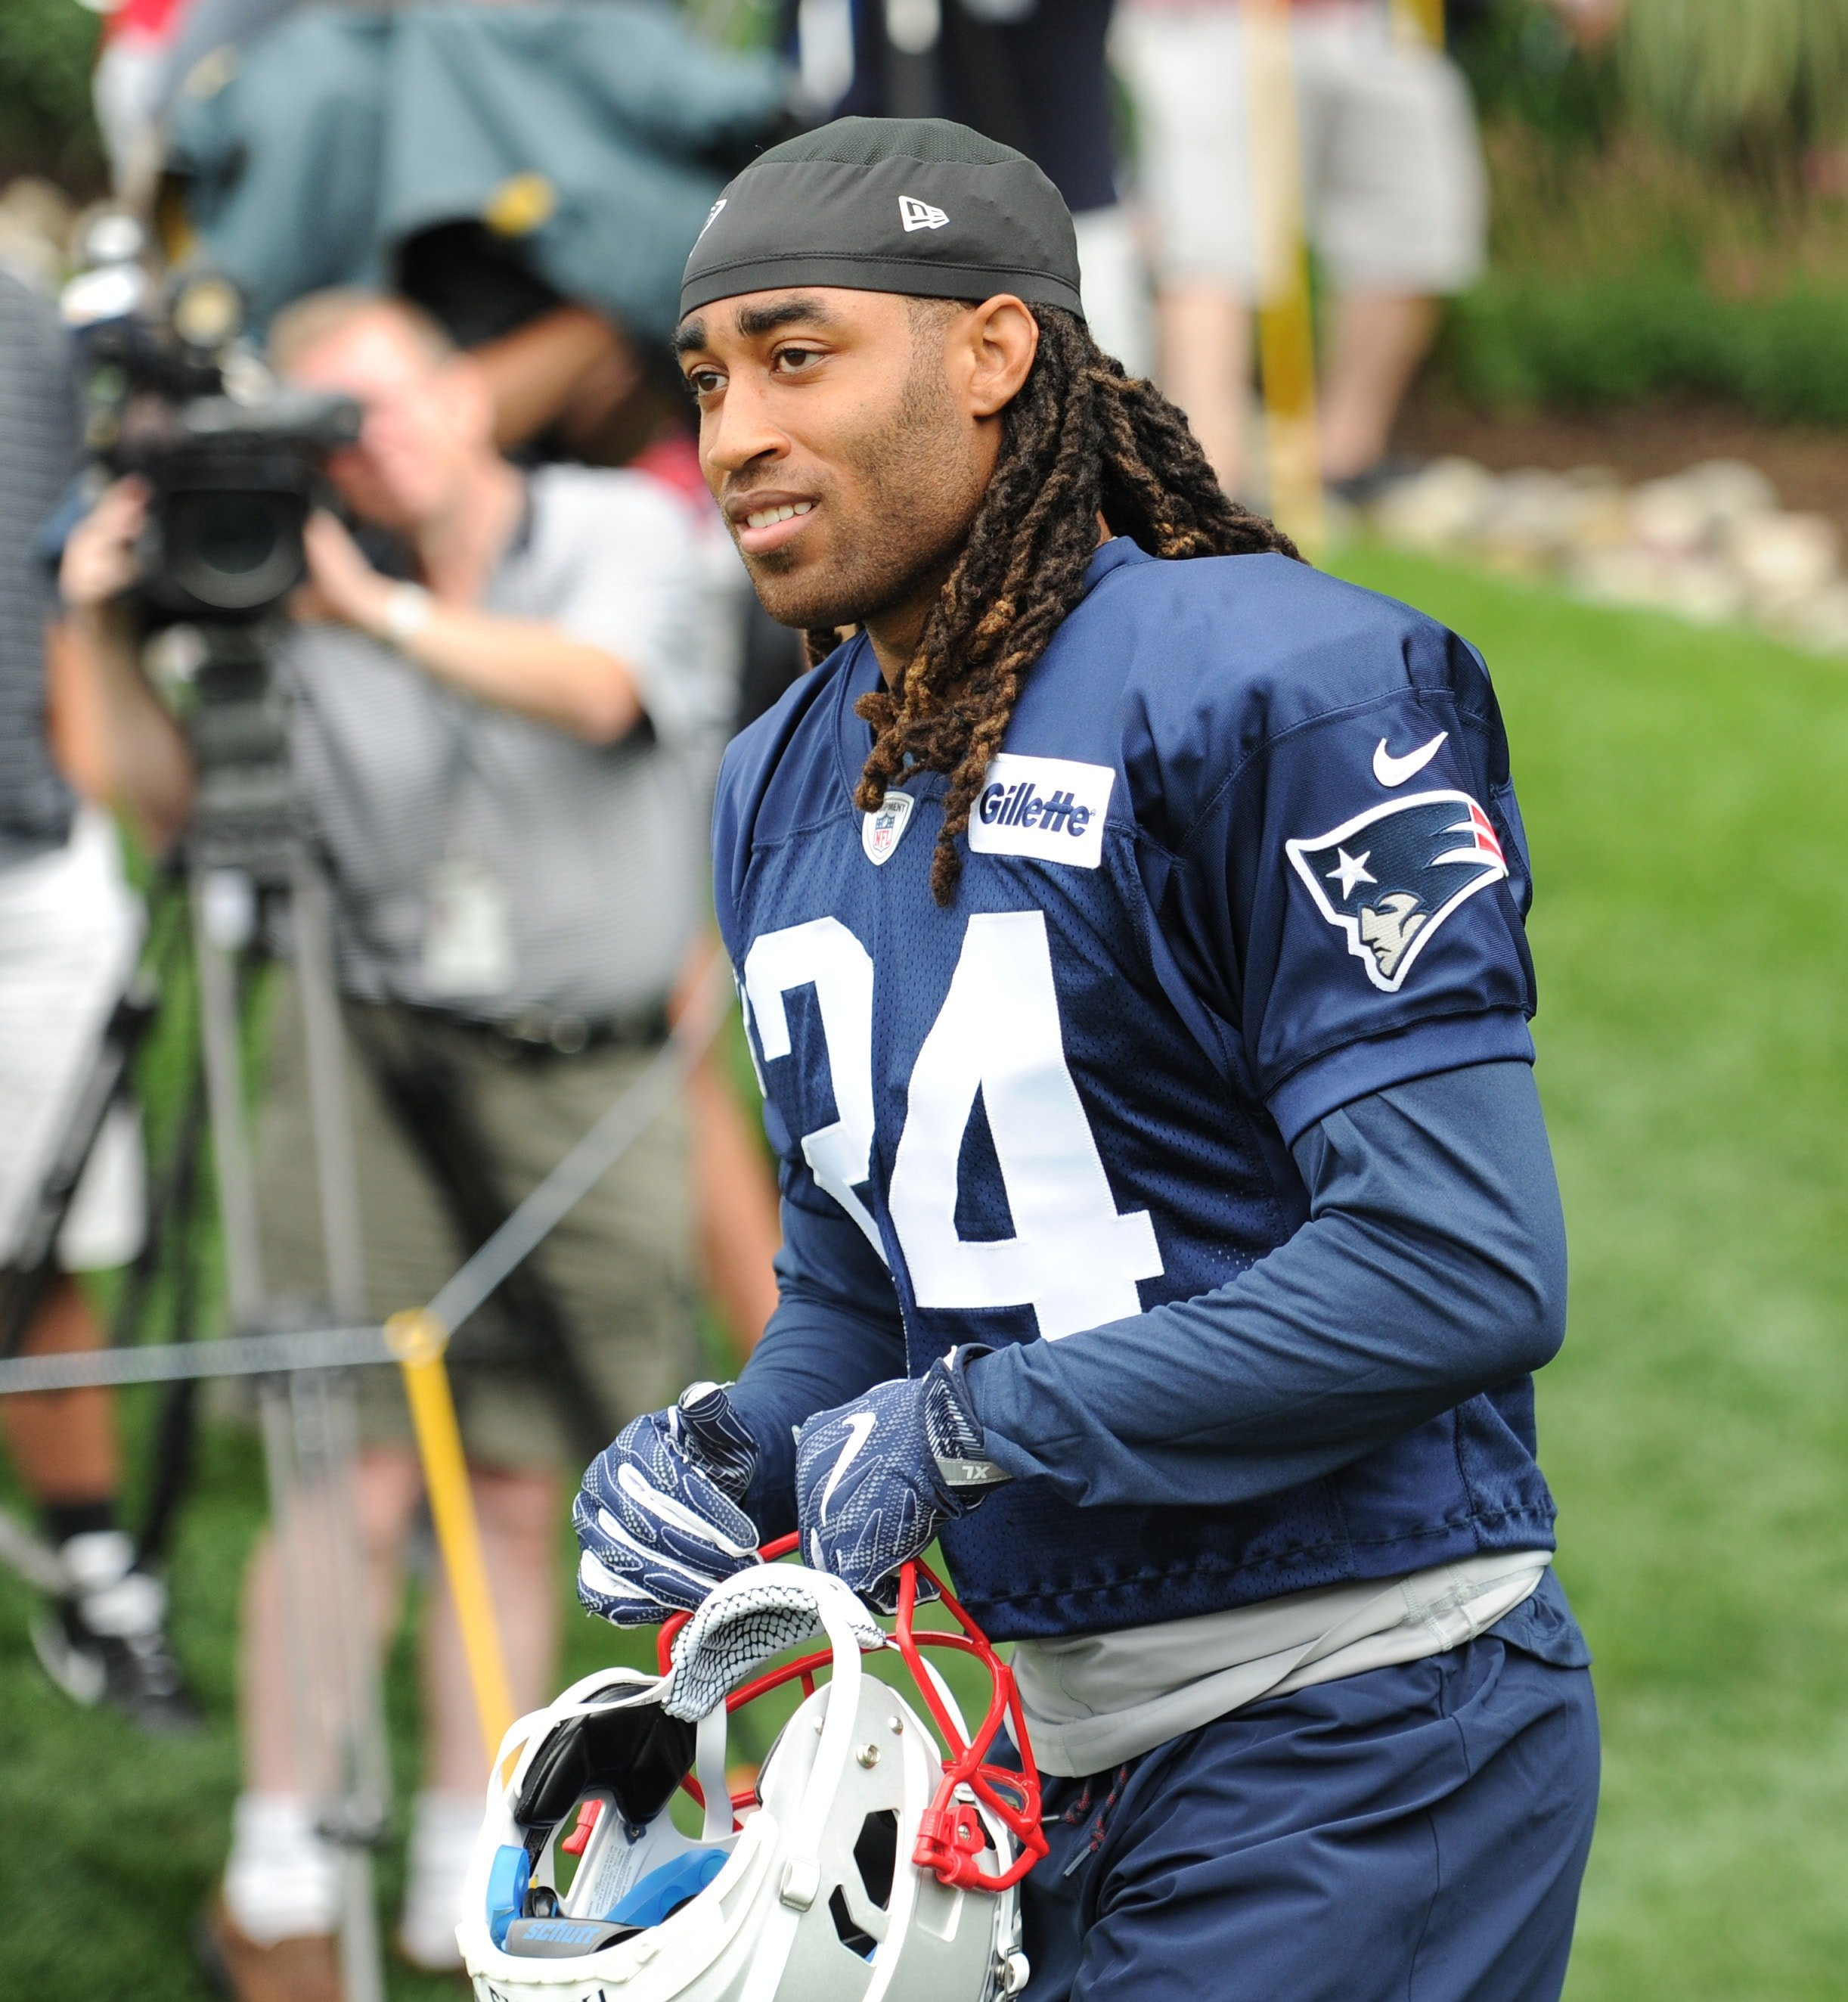 Patriots  Stephon Gilmore named to Pro Football Writers  All-NFL Team 44411eeb4